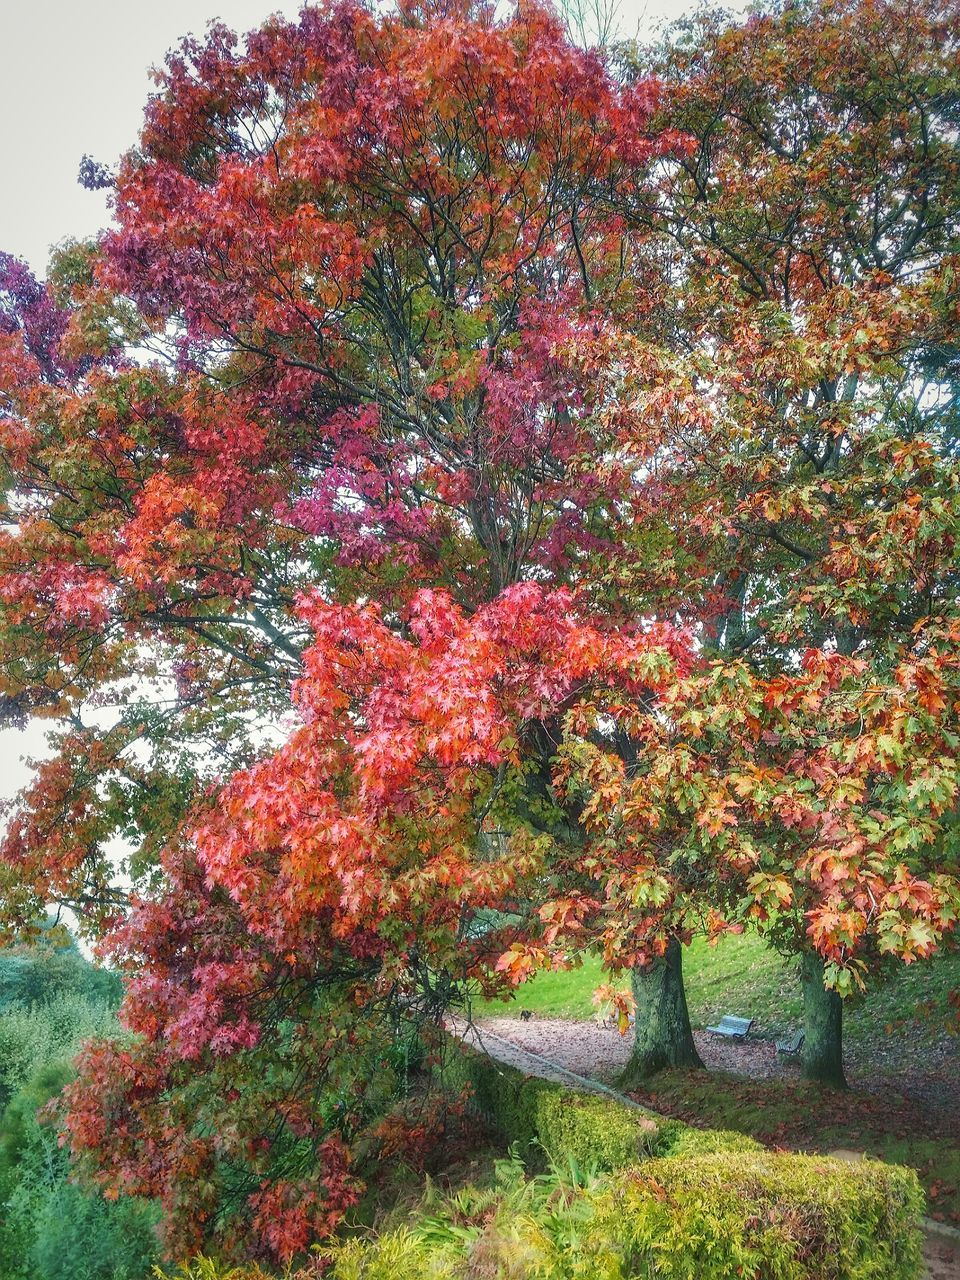 tree, growth, autumn, nature, tranquility, beauty in nature, day, no people, outdoors, plant, leaf, grass, scenics, flower, sky